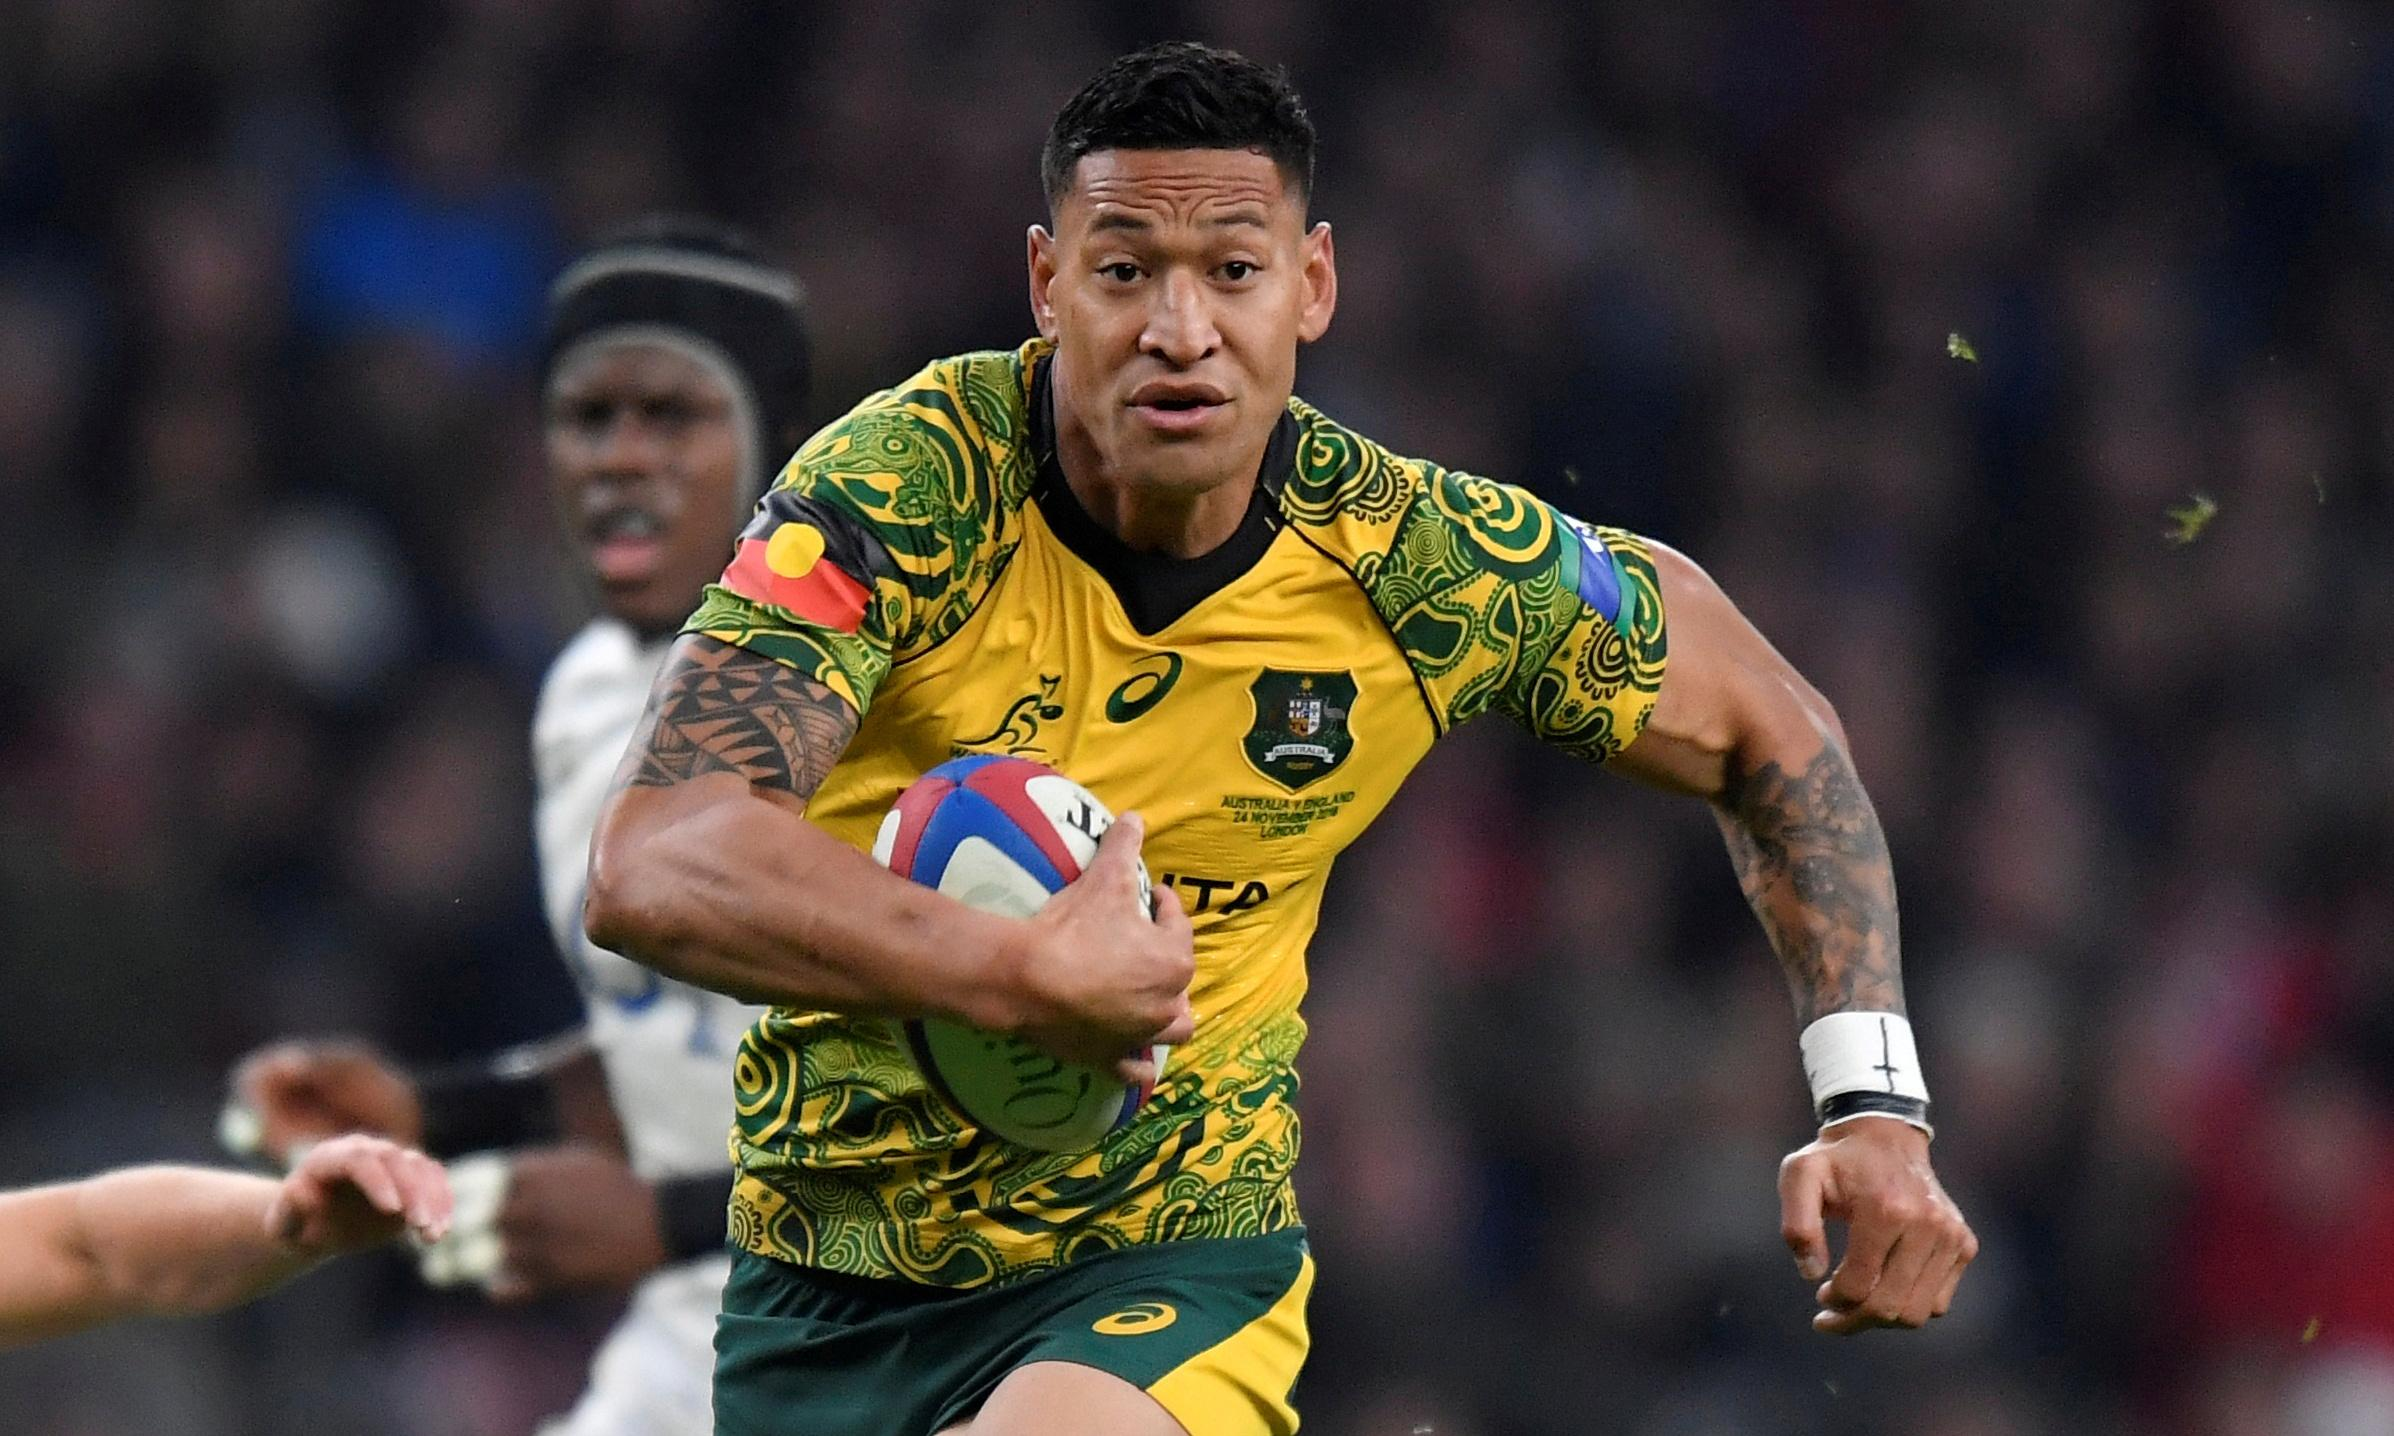 Israel Folau under fire for implying bushfires are God's punishment